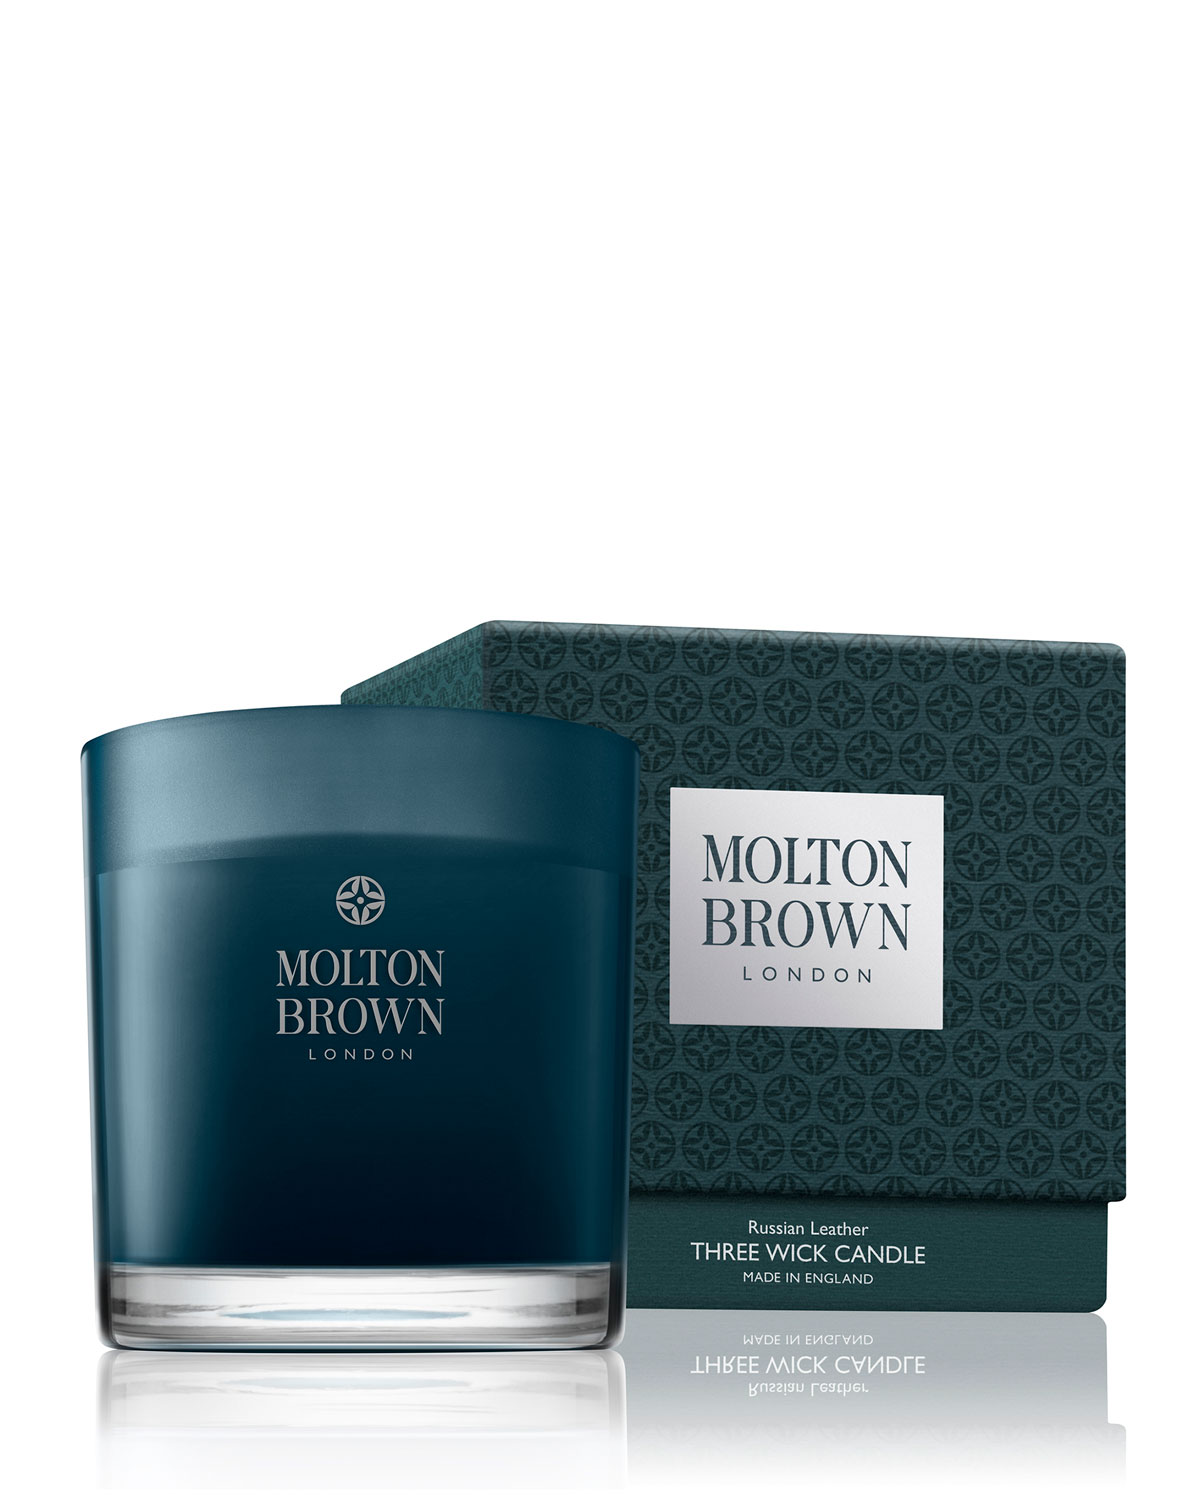 Molton Brown Russian Leather Three Wick Candle, 16.9 oz. /  479 g